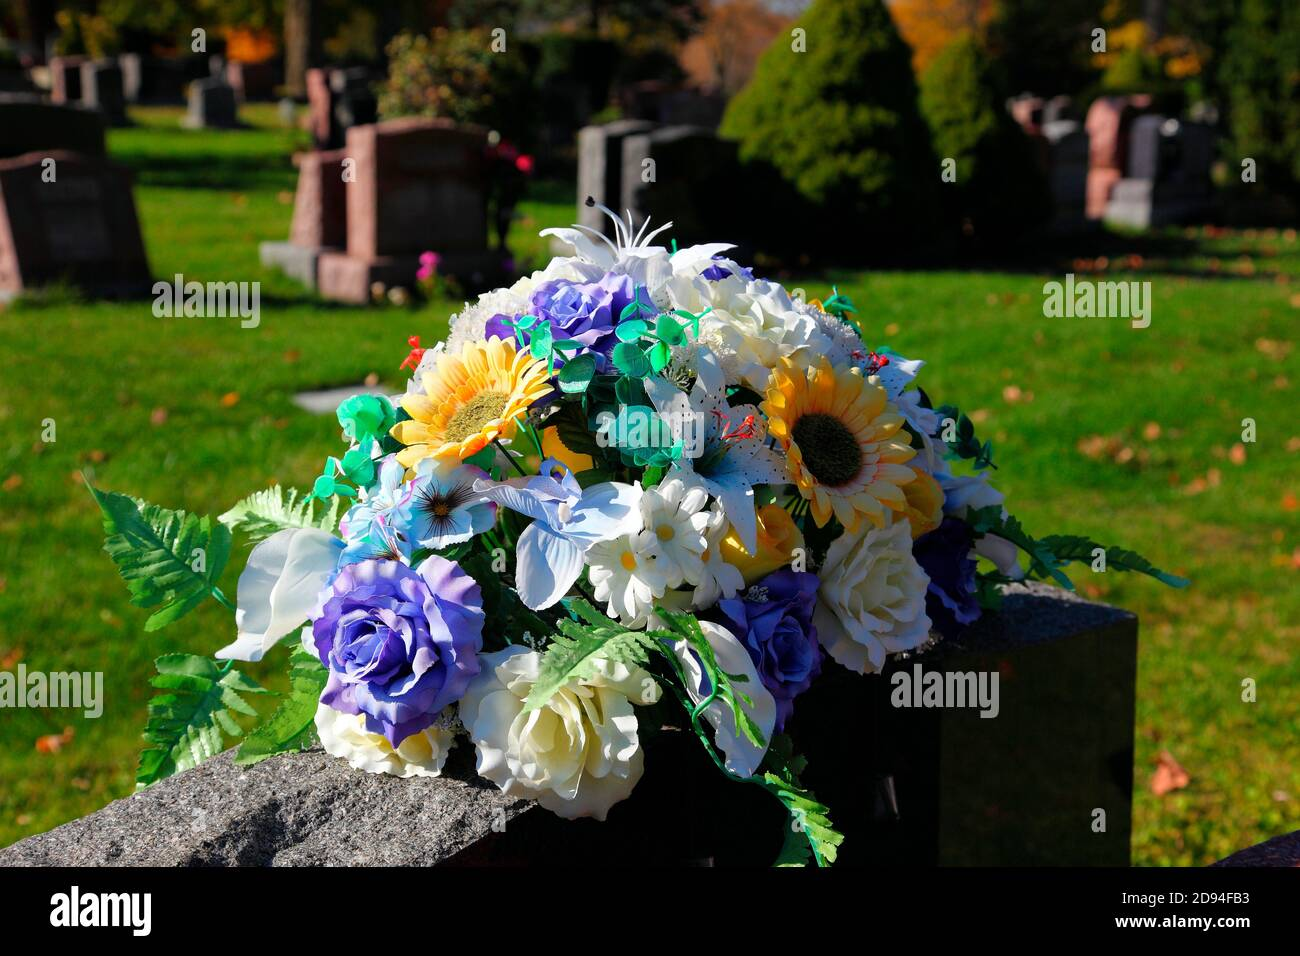 flowers on a grave stone Stock Photo